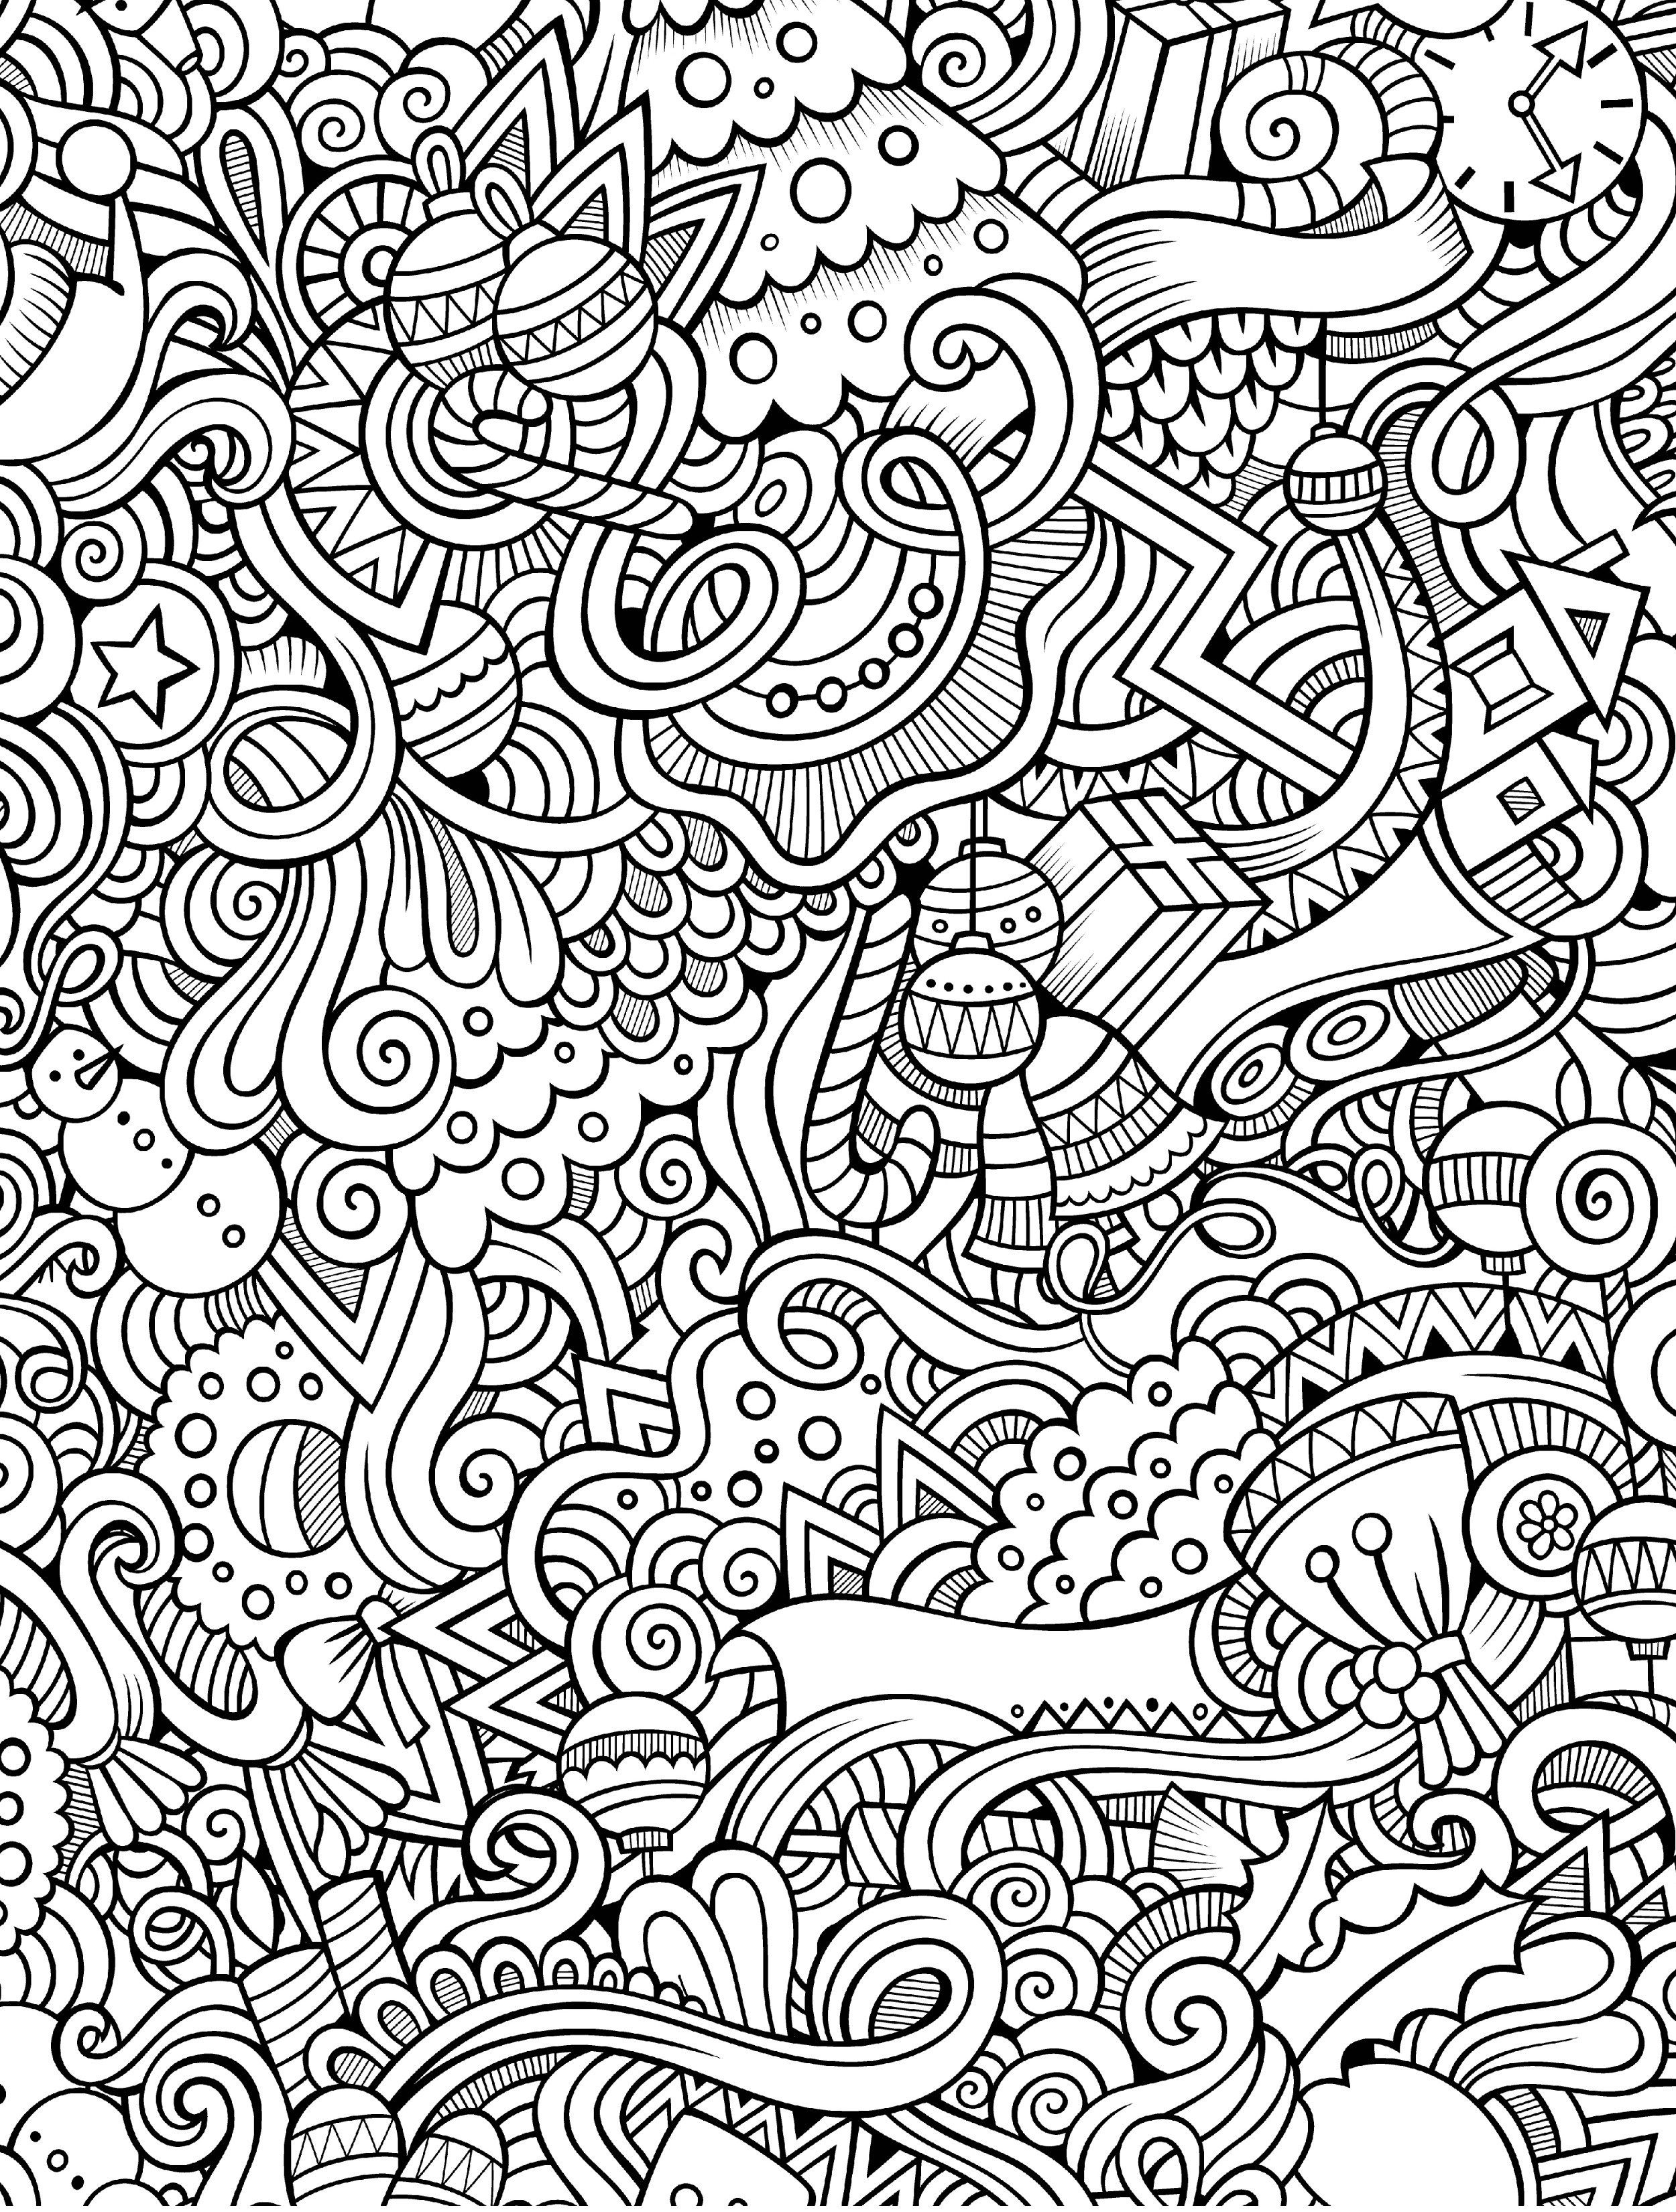 _ free download easy adult coloring pages for christmas small